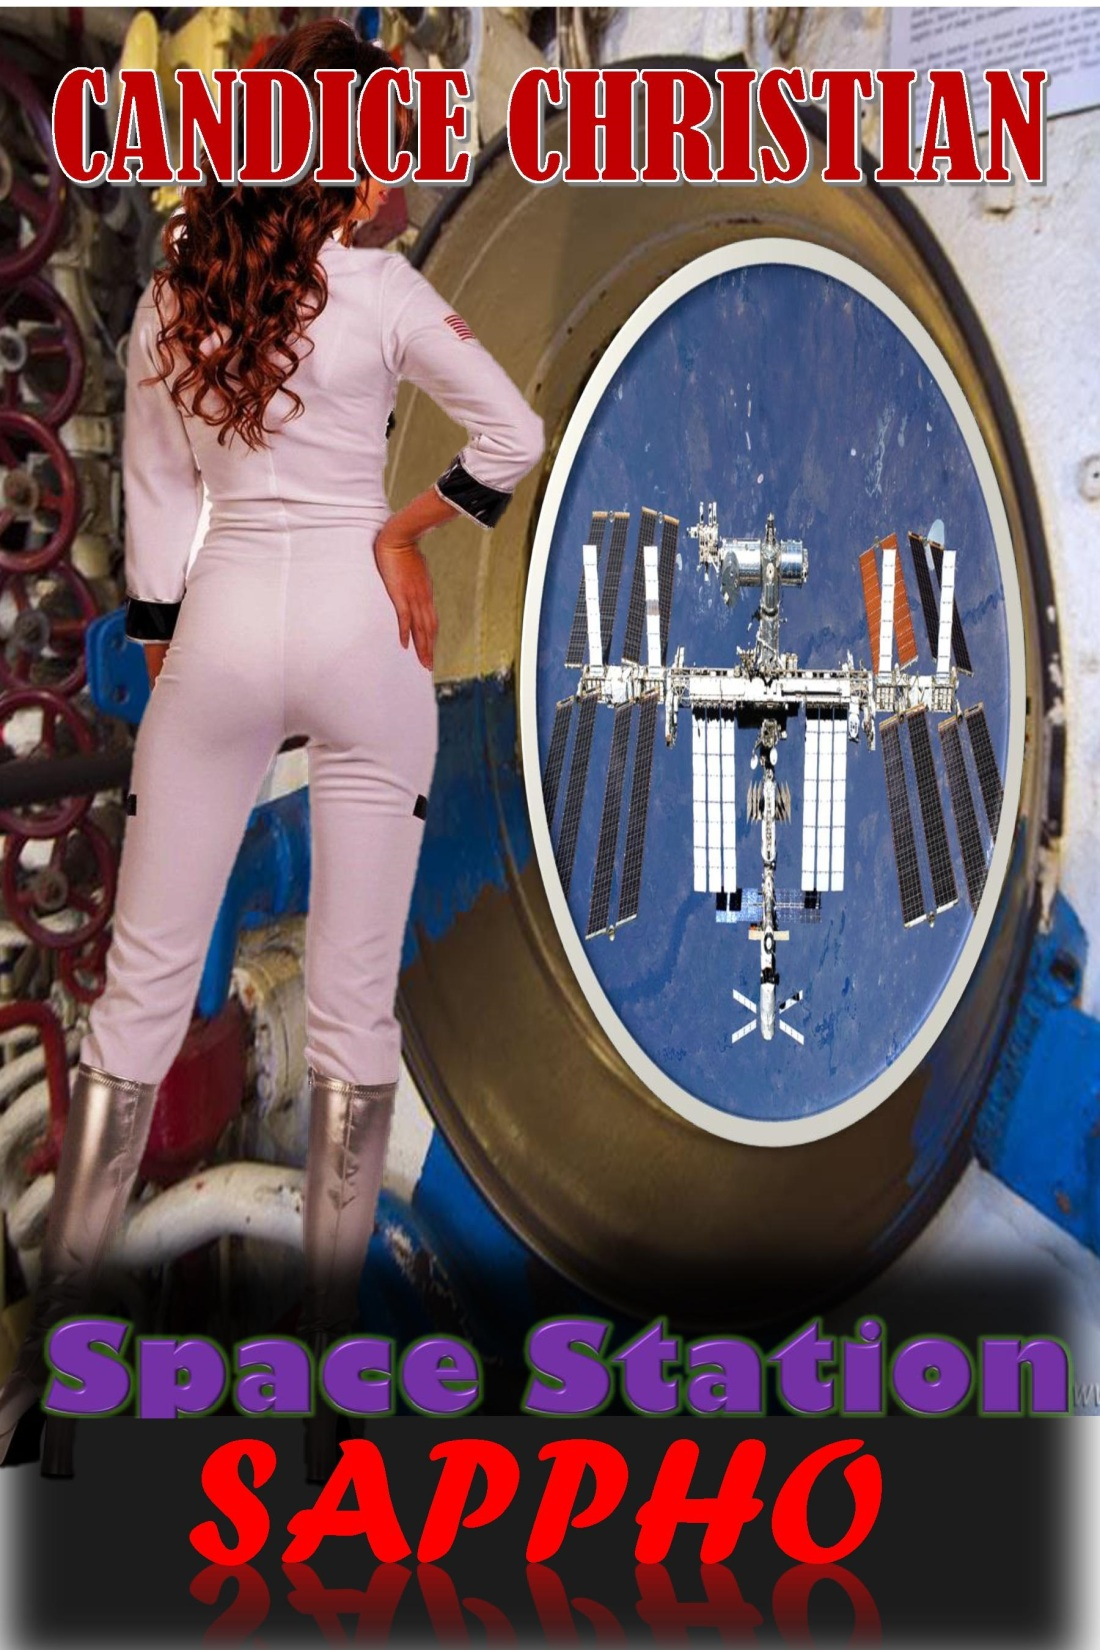 SPACE STATION SAPPHO COVER